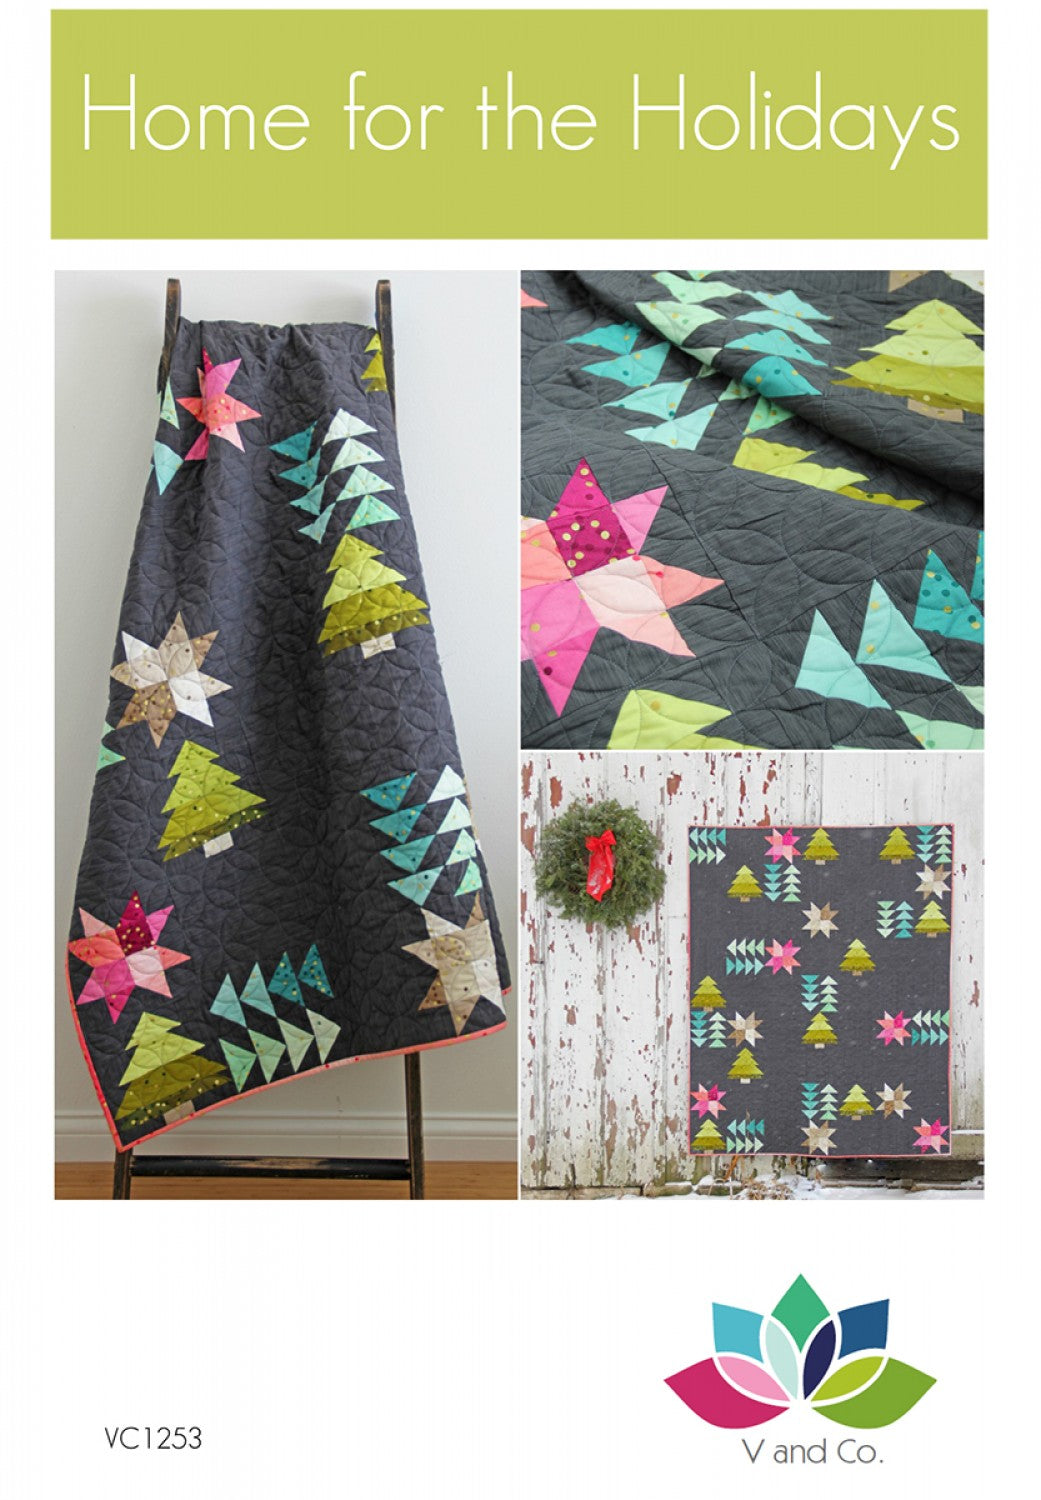 Home for the Holidays Ombre Quilt Pattern by Vanessa Christenson of V and Co